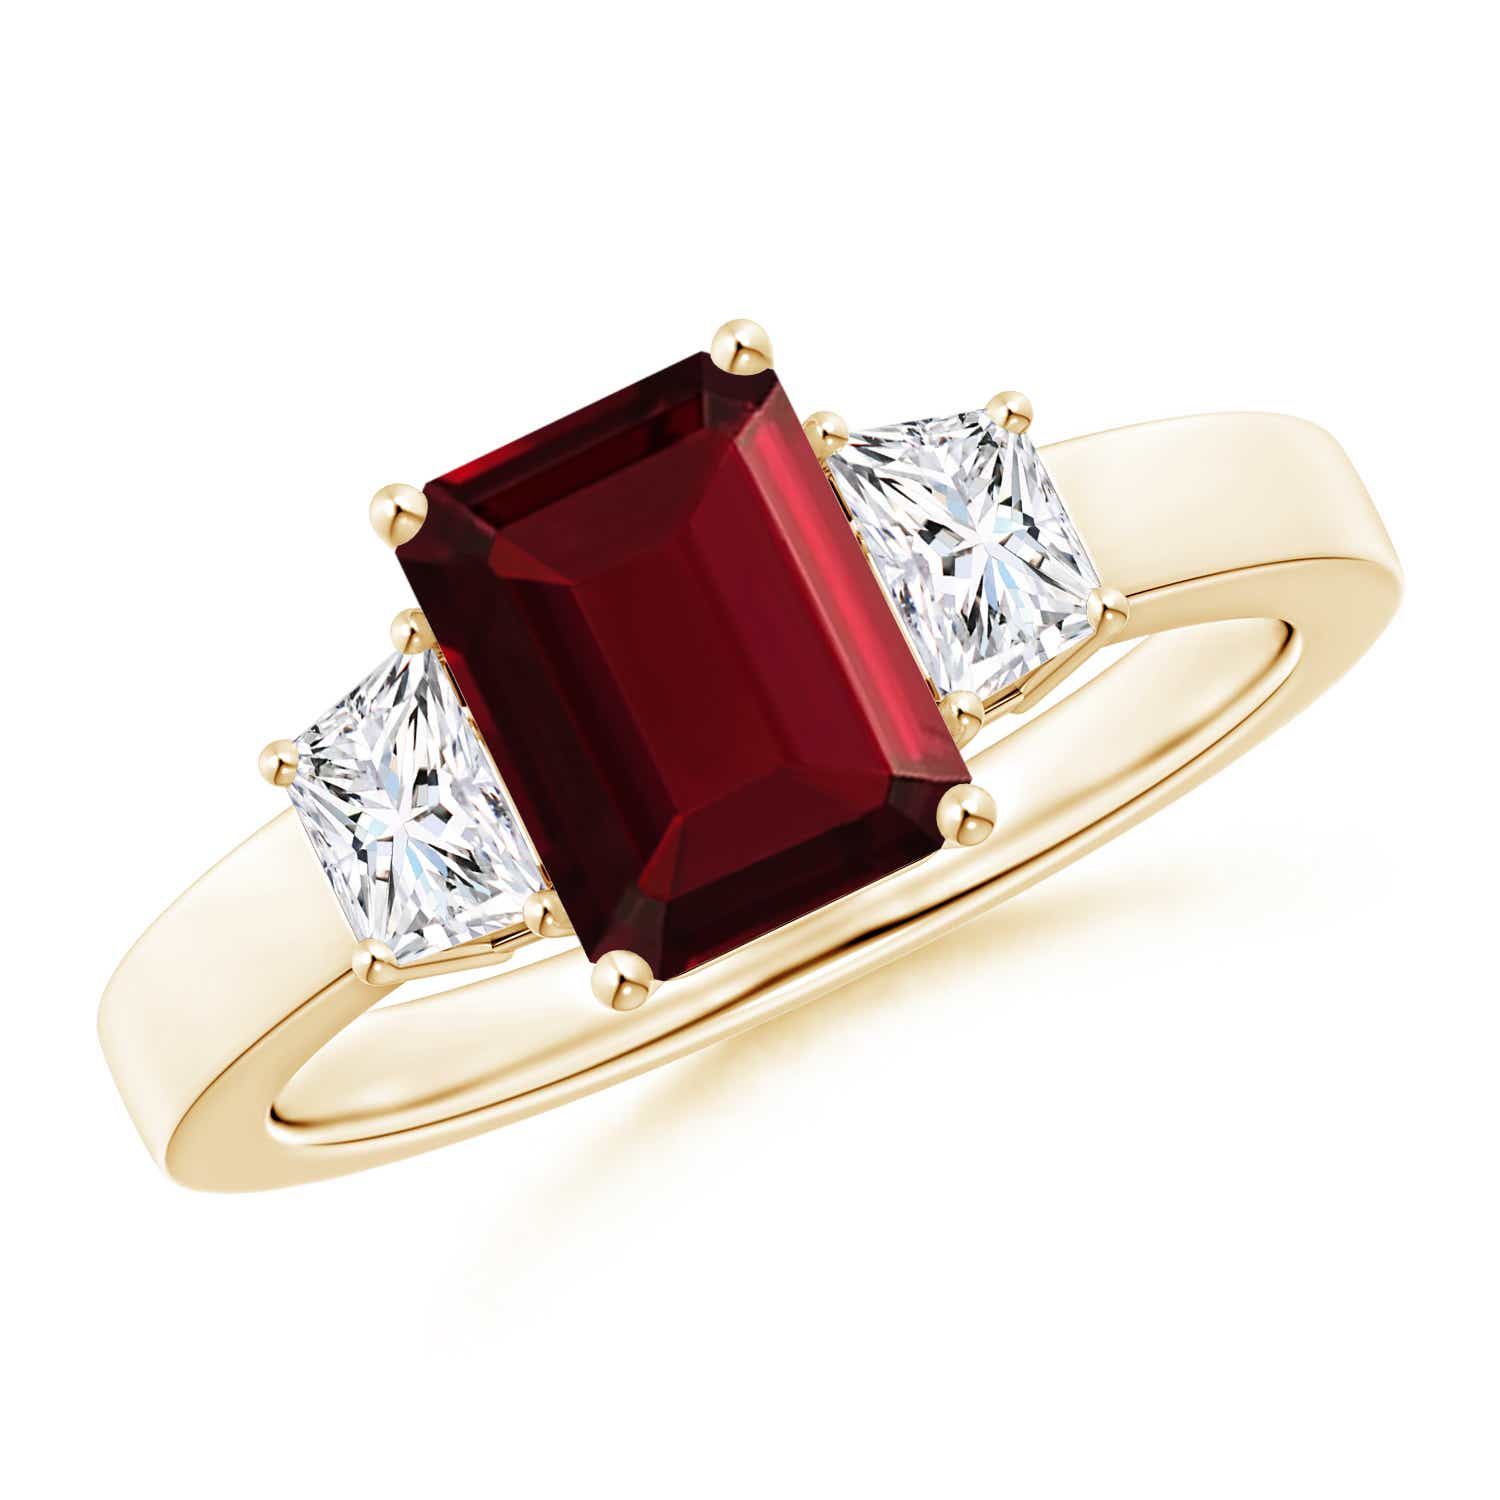 Emerald Cut Garnet and Diamond Three Stone Ring - Angara.com